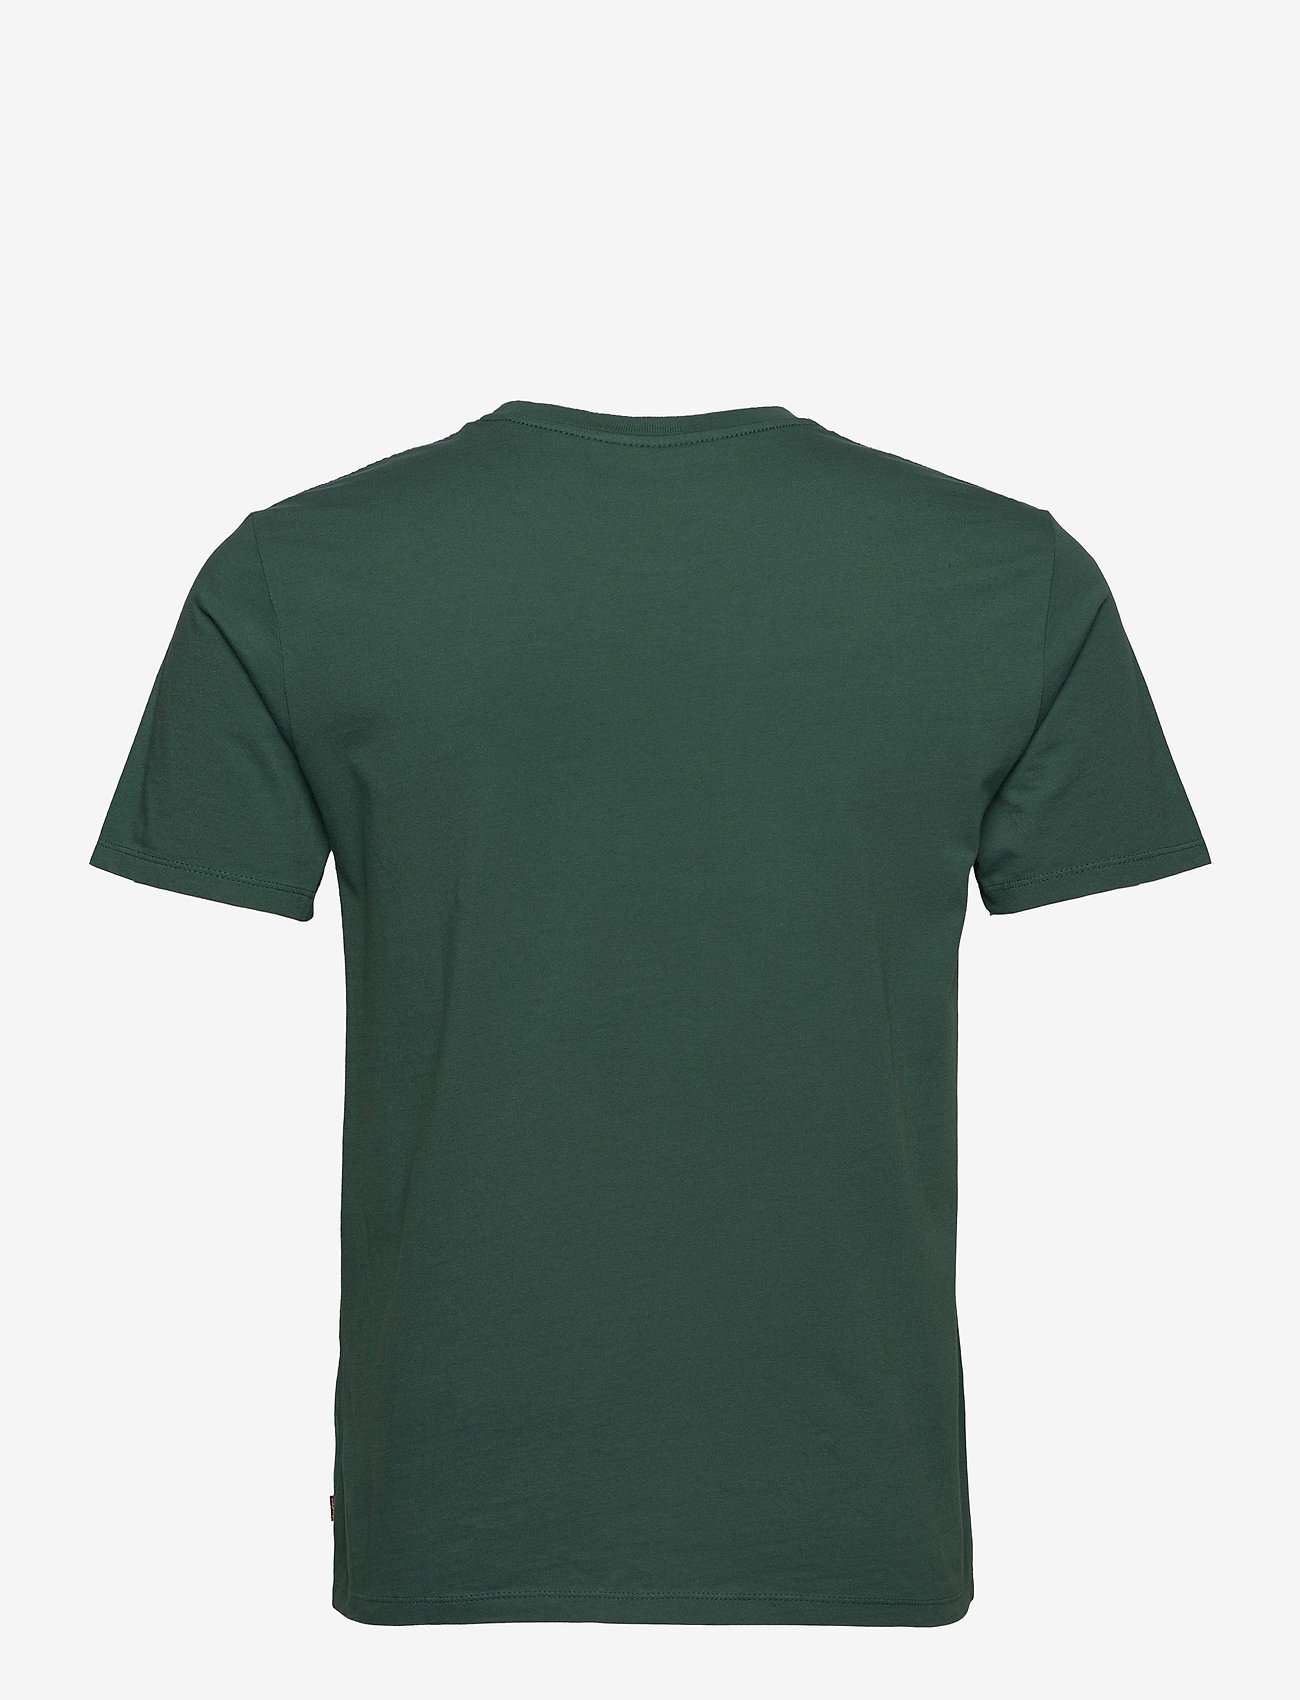 LEVI´S Men - HOUSEMARK GRAPHIC TEE SSNL HM - short-sleeved t-shirts - greens - 1